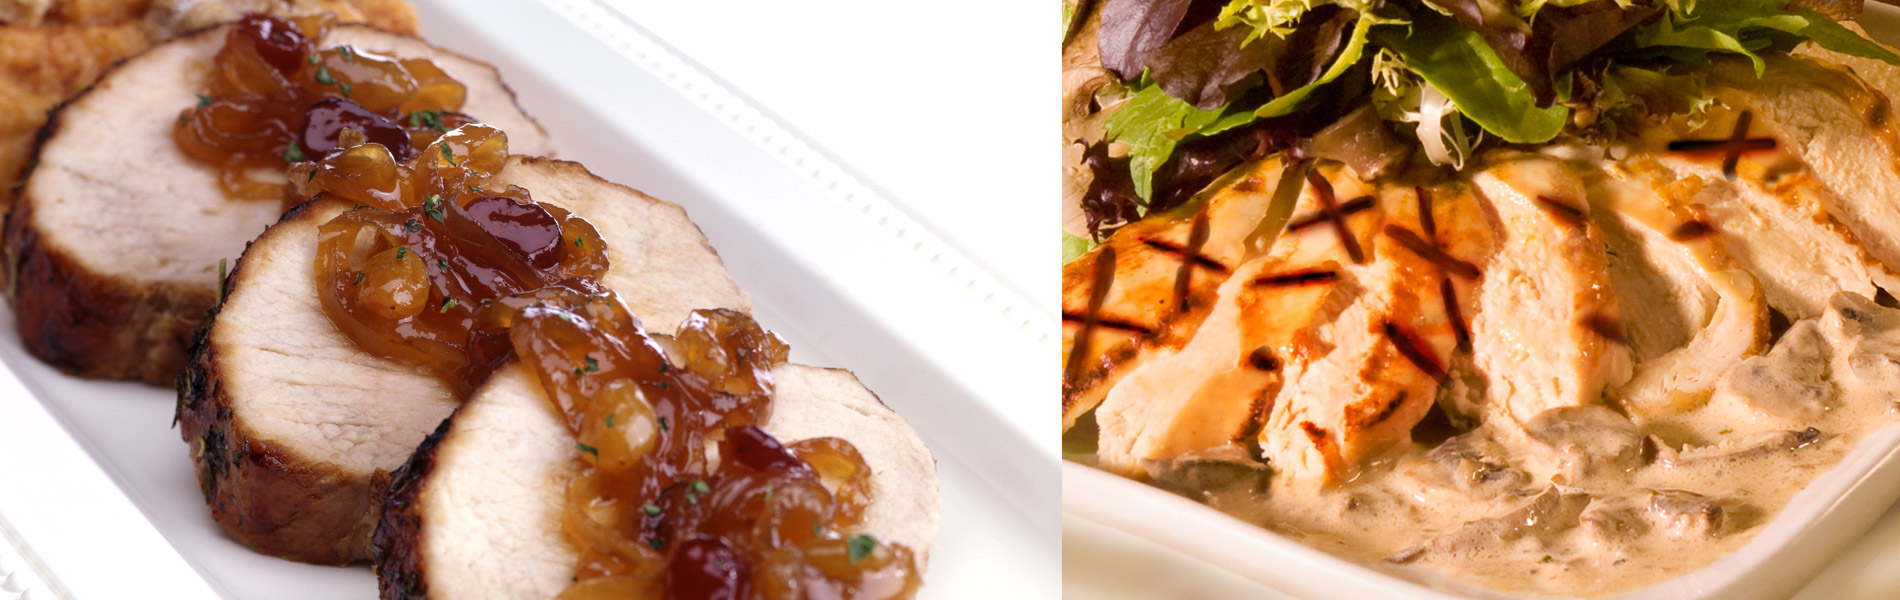 Fresh made upscale fine entrees at Fresh To Order